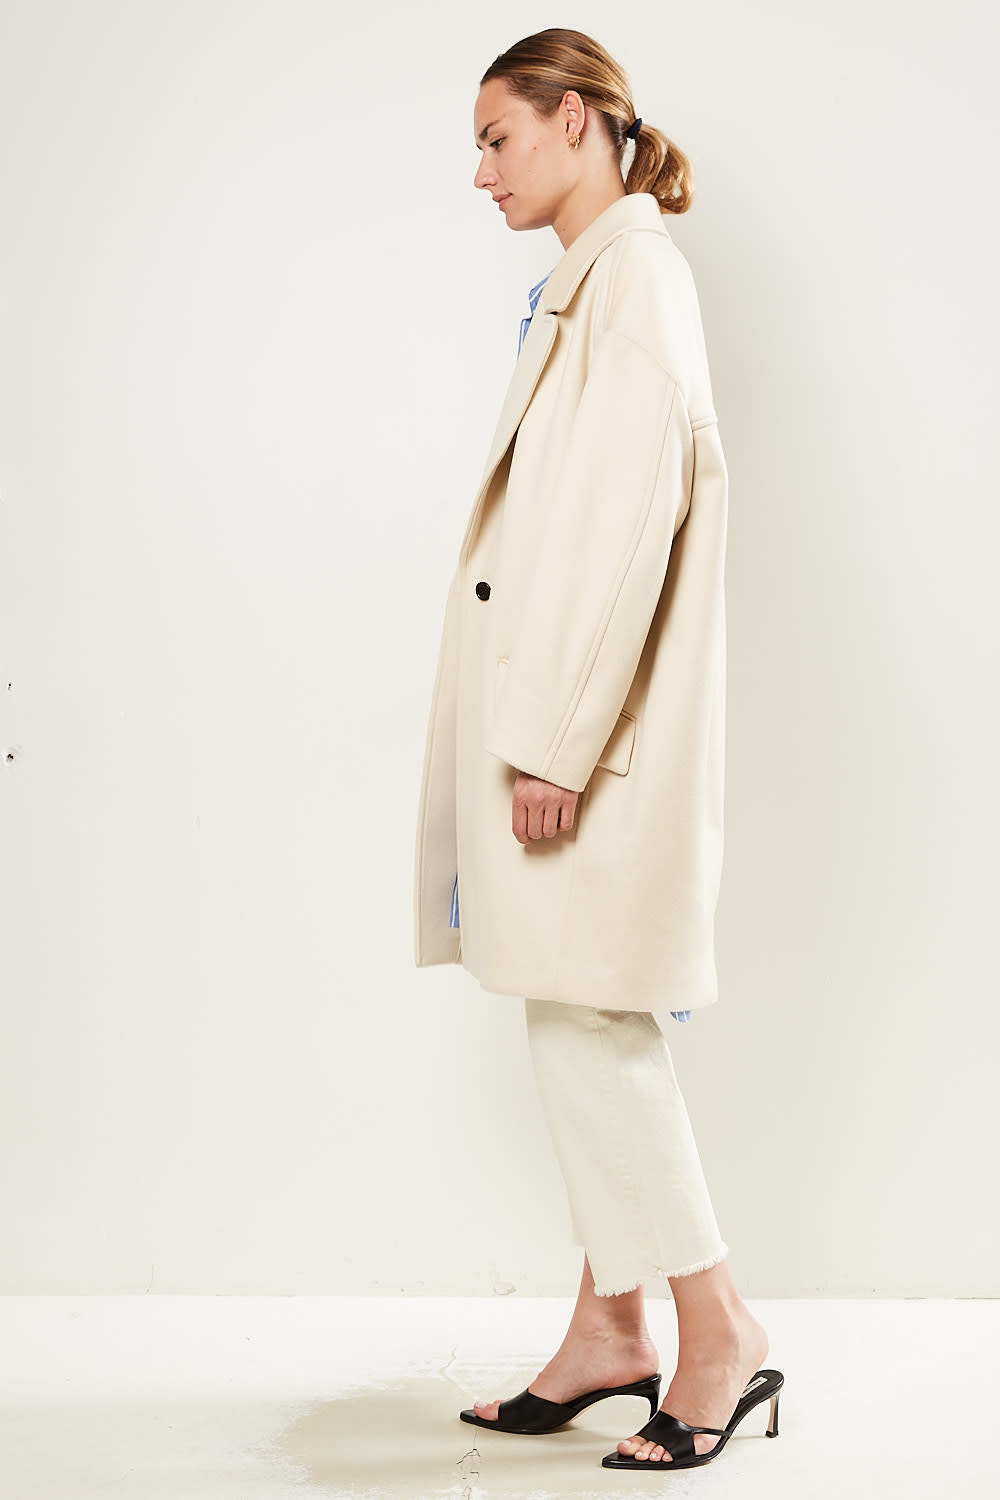 Isabel Marant Ego timeless coat